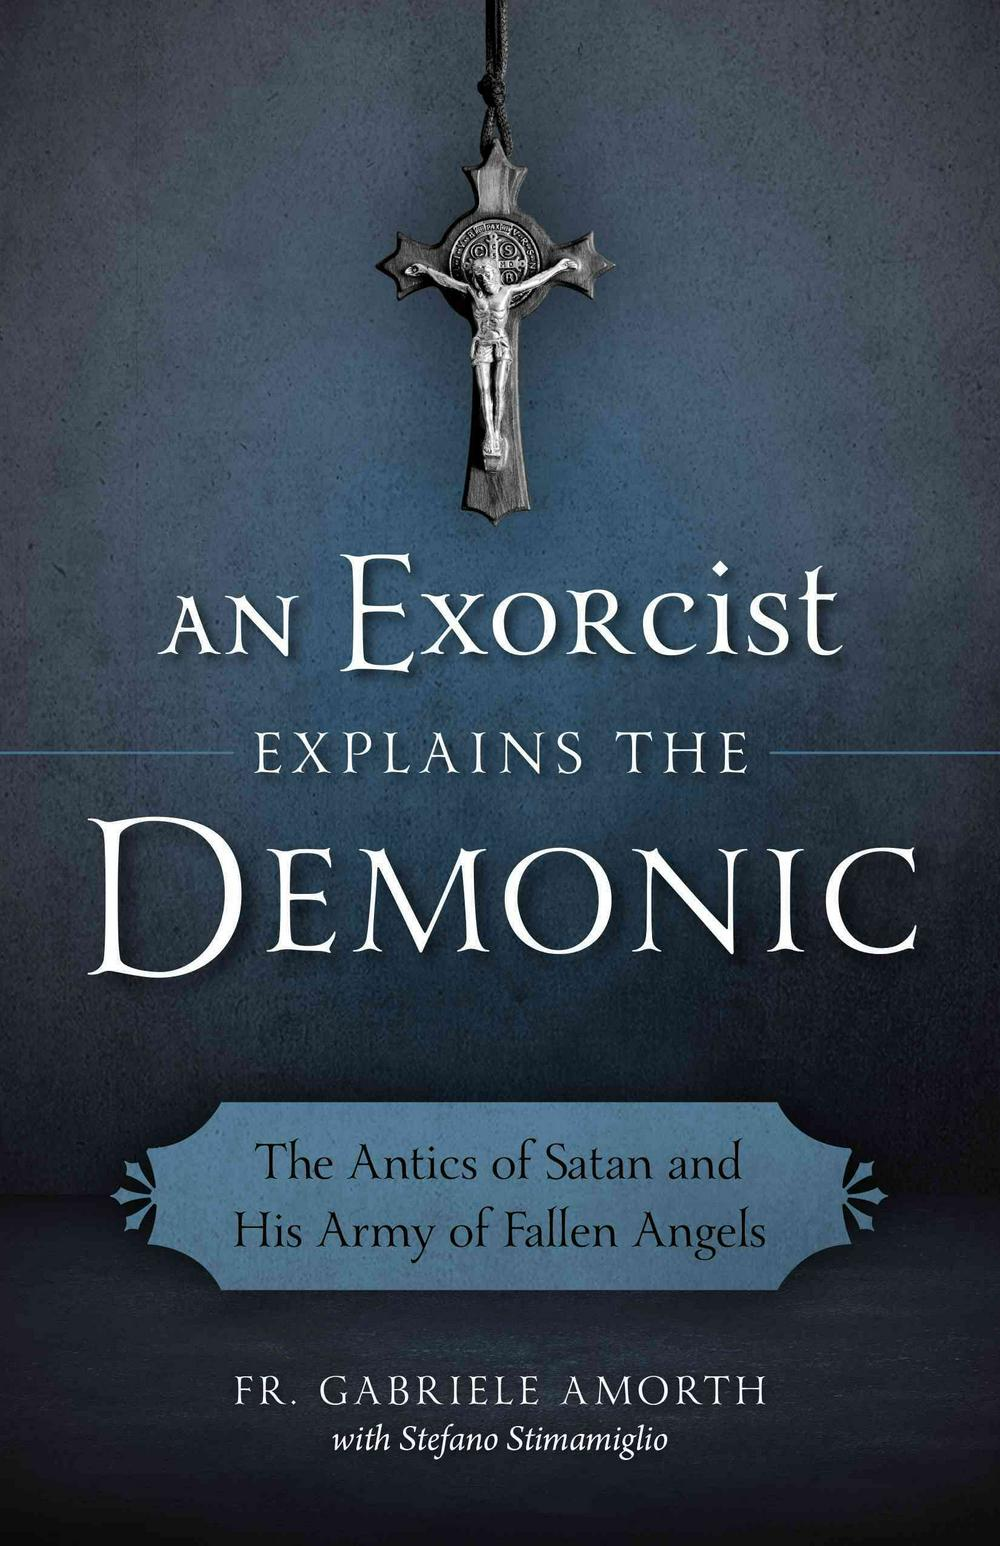 An Exorcist Explain the Demonic: The Antics of Satan and His Army of Fallen Angels